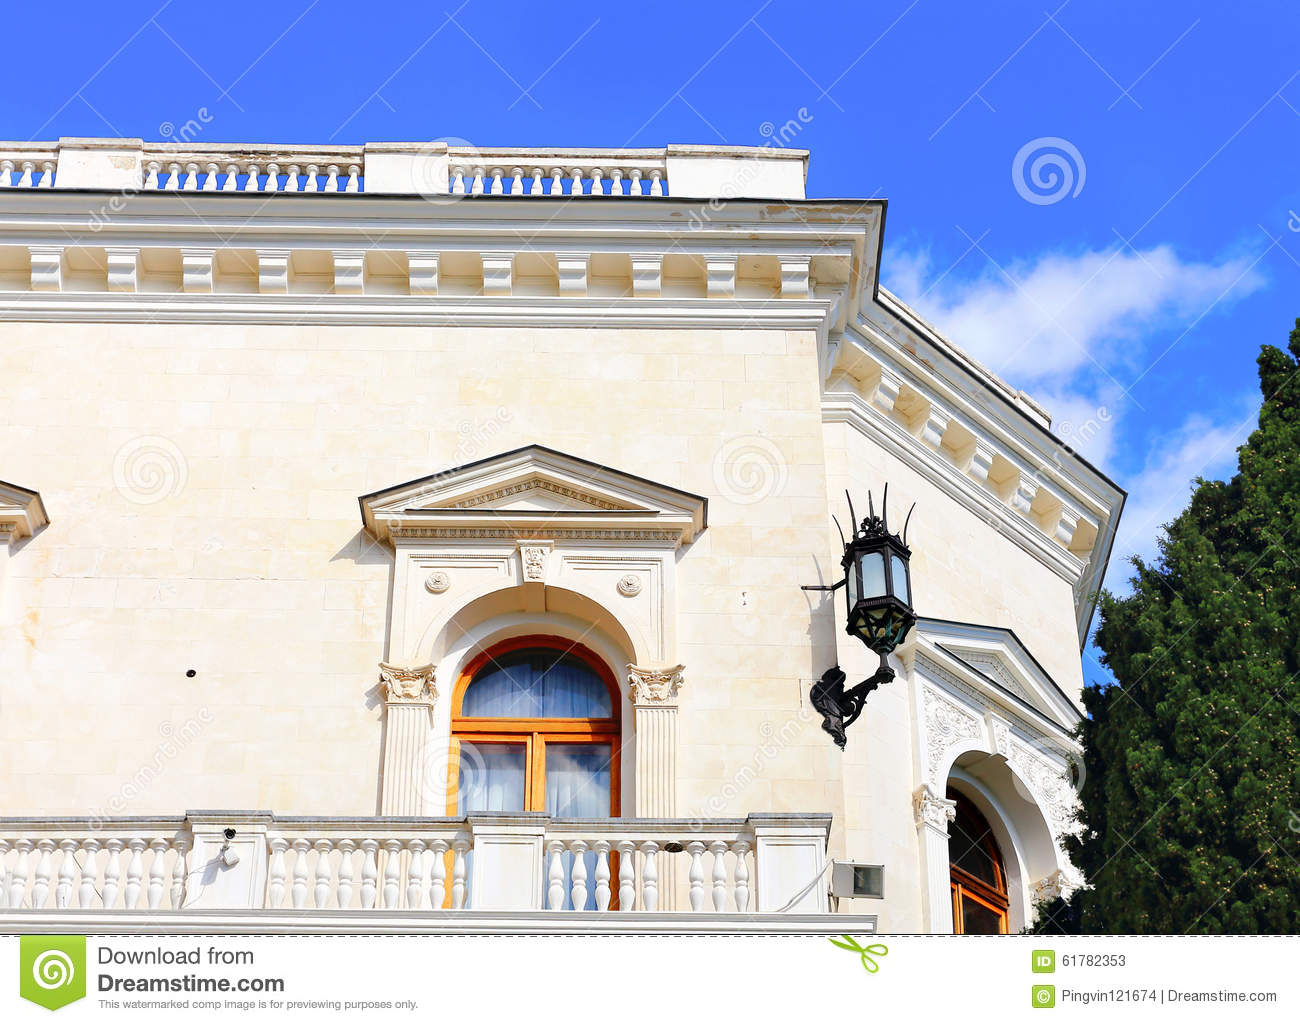 Balcony In Marble Wall : White building with balcony and stone staircase stock